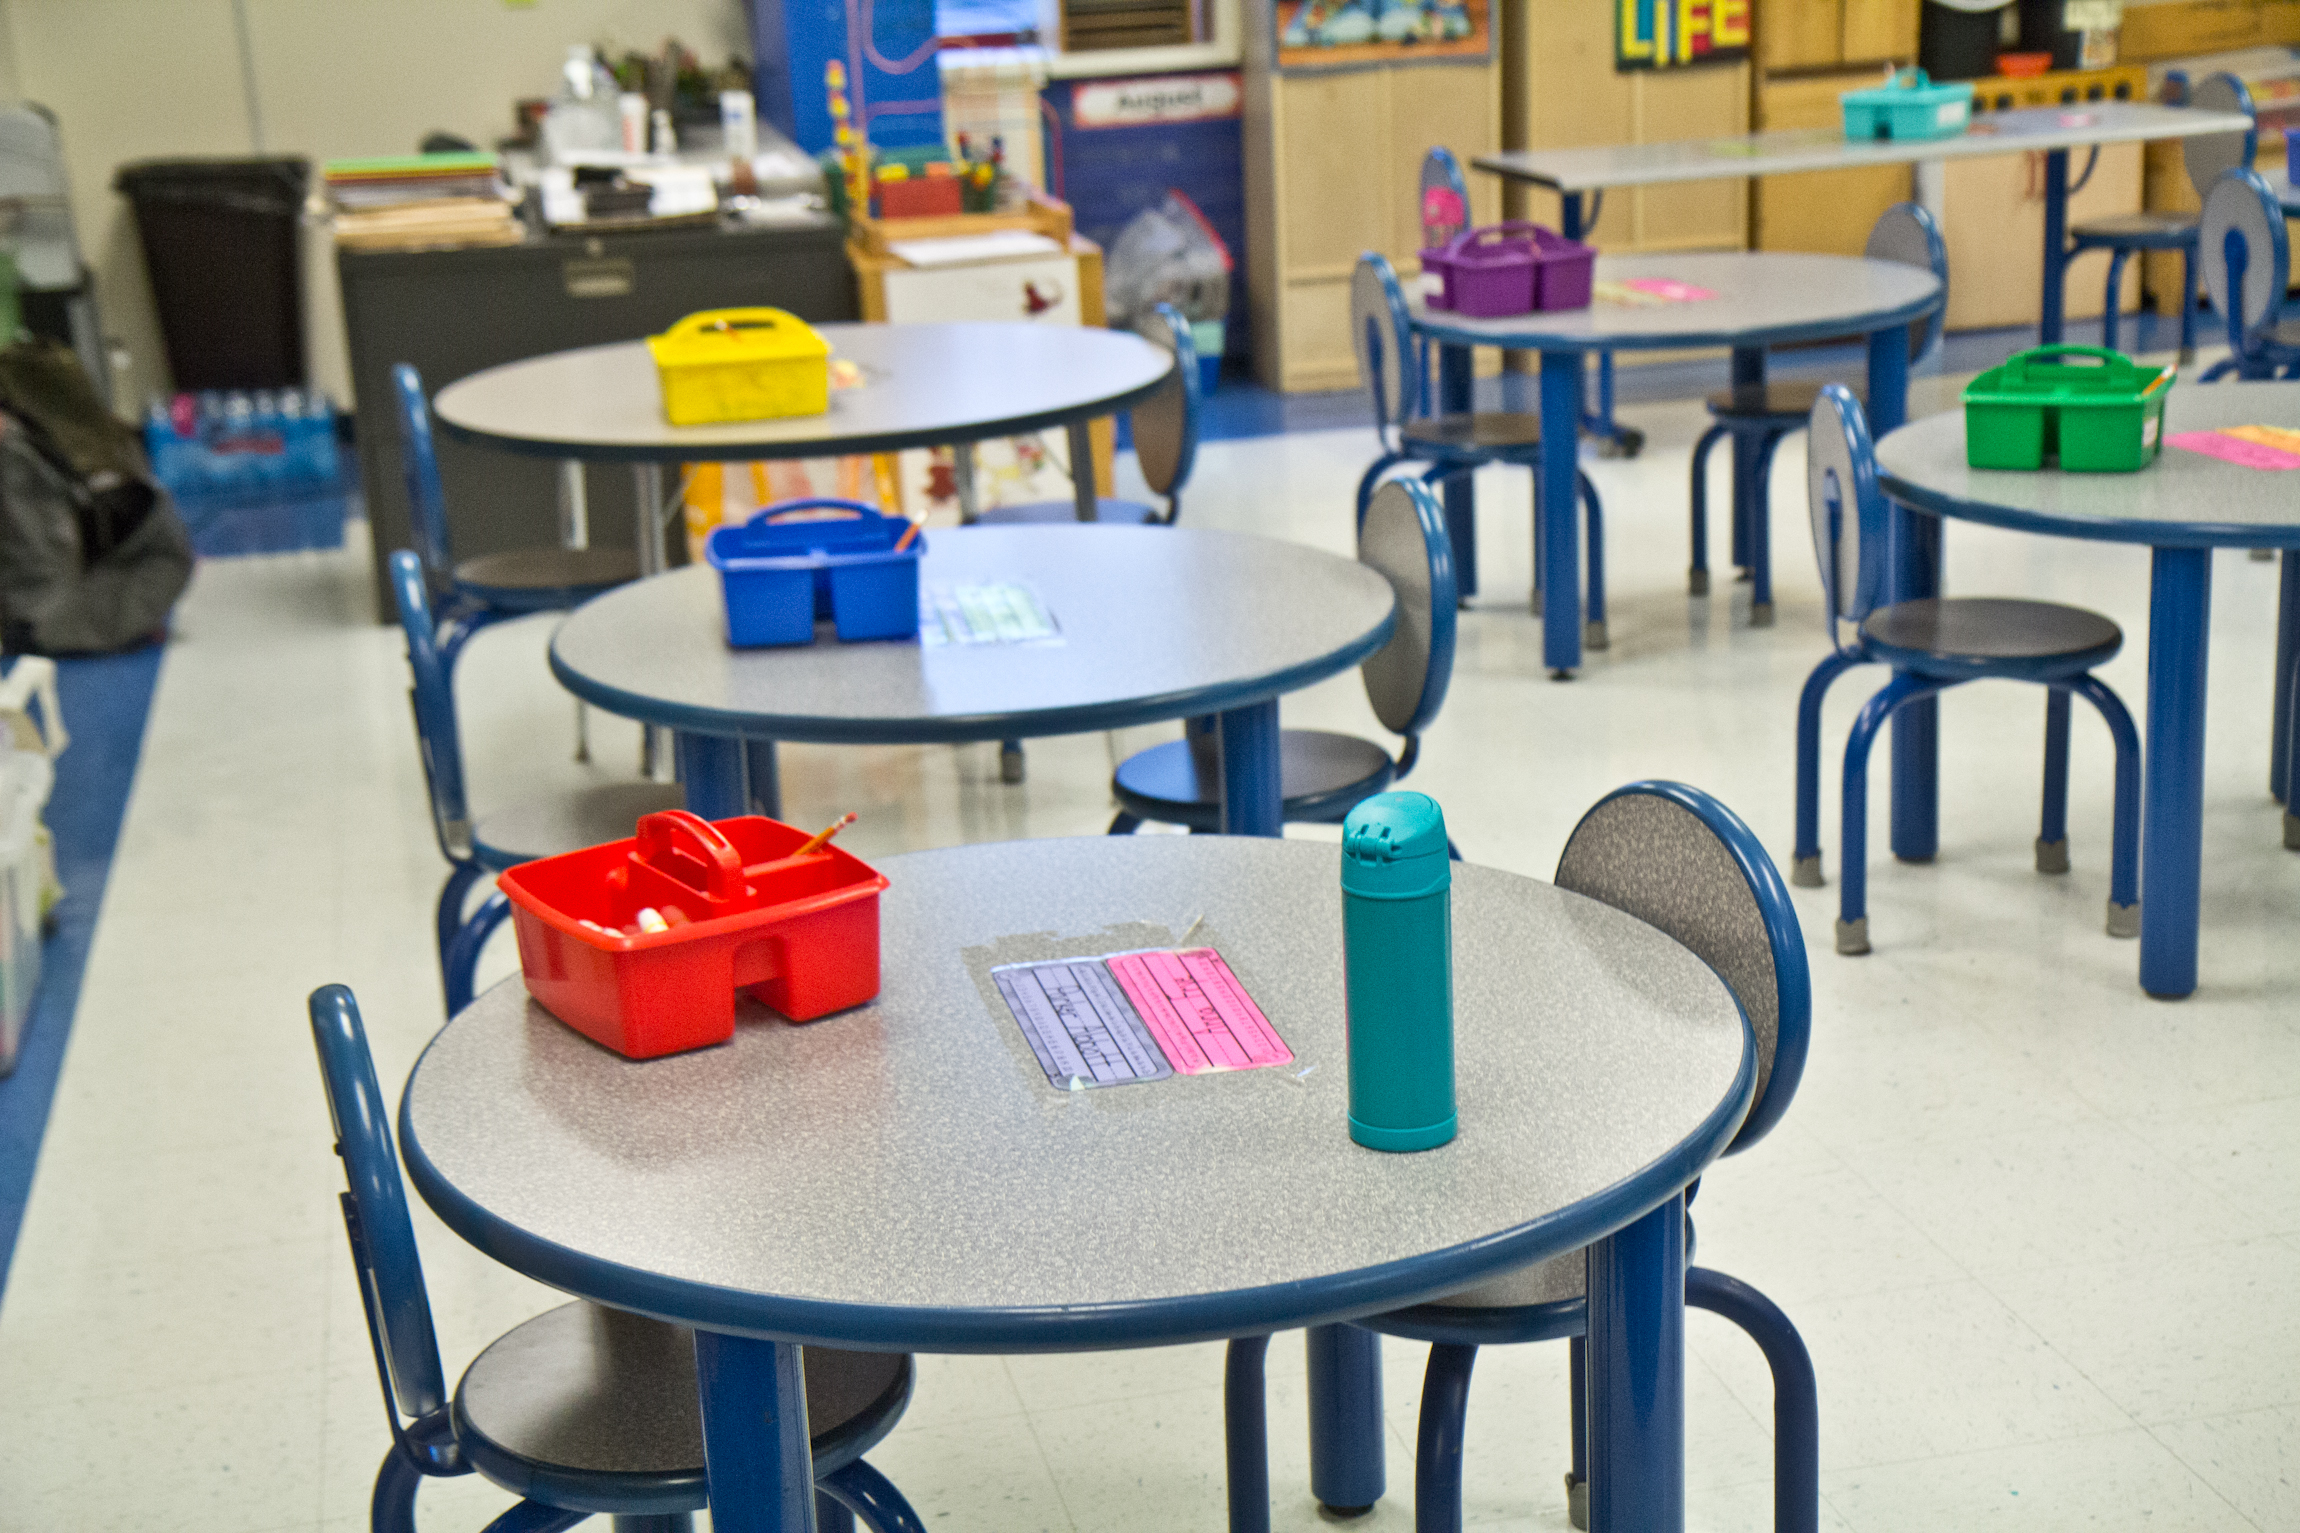 Activity tables are spaced apart at a Philadelphia charter school